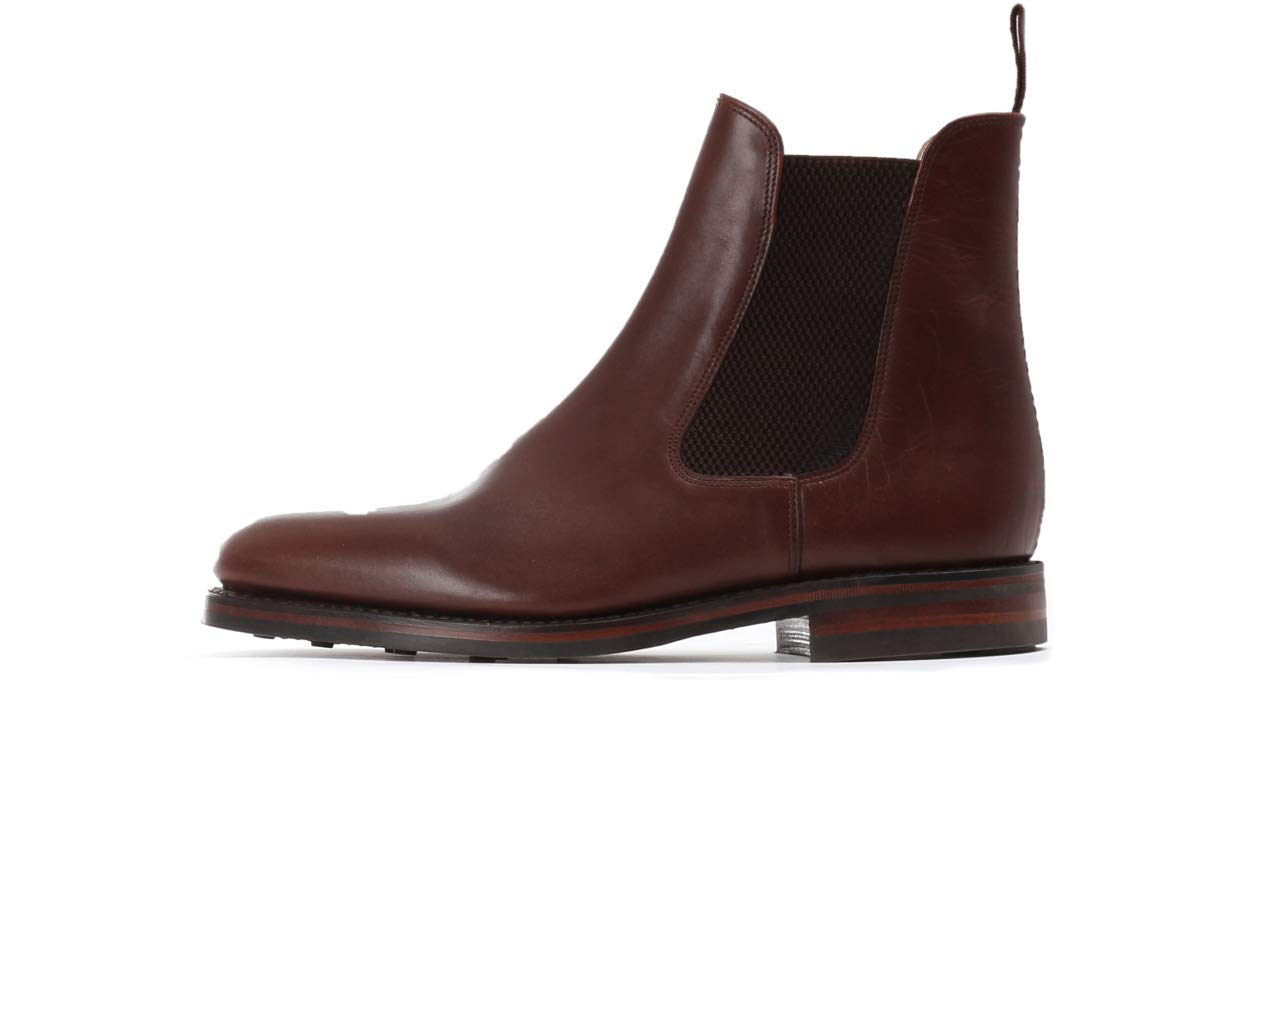 Loake 1880 Men's Blenheim Leather Chelsea Boots